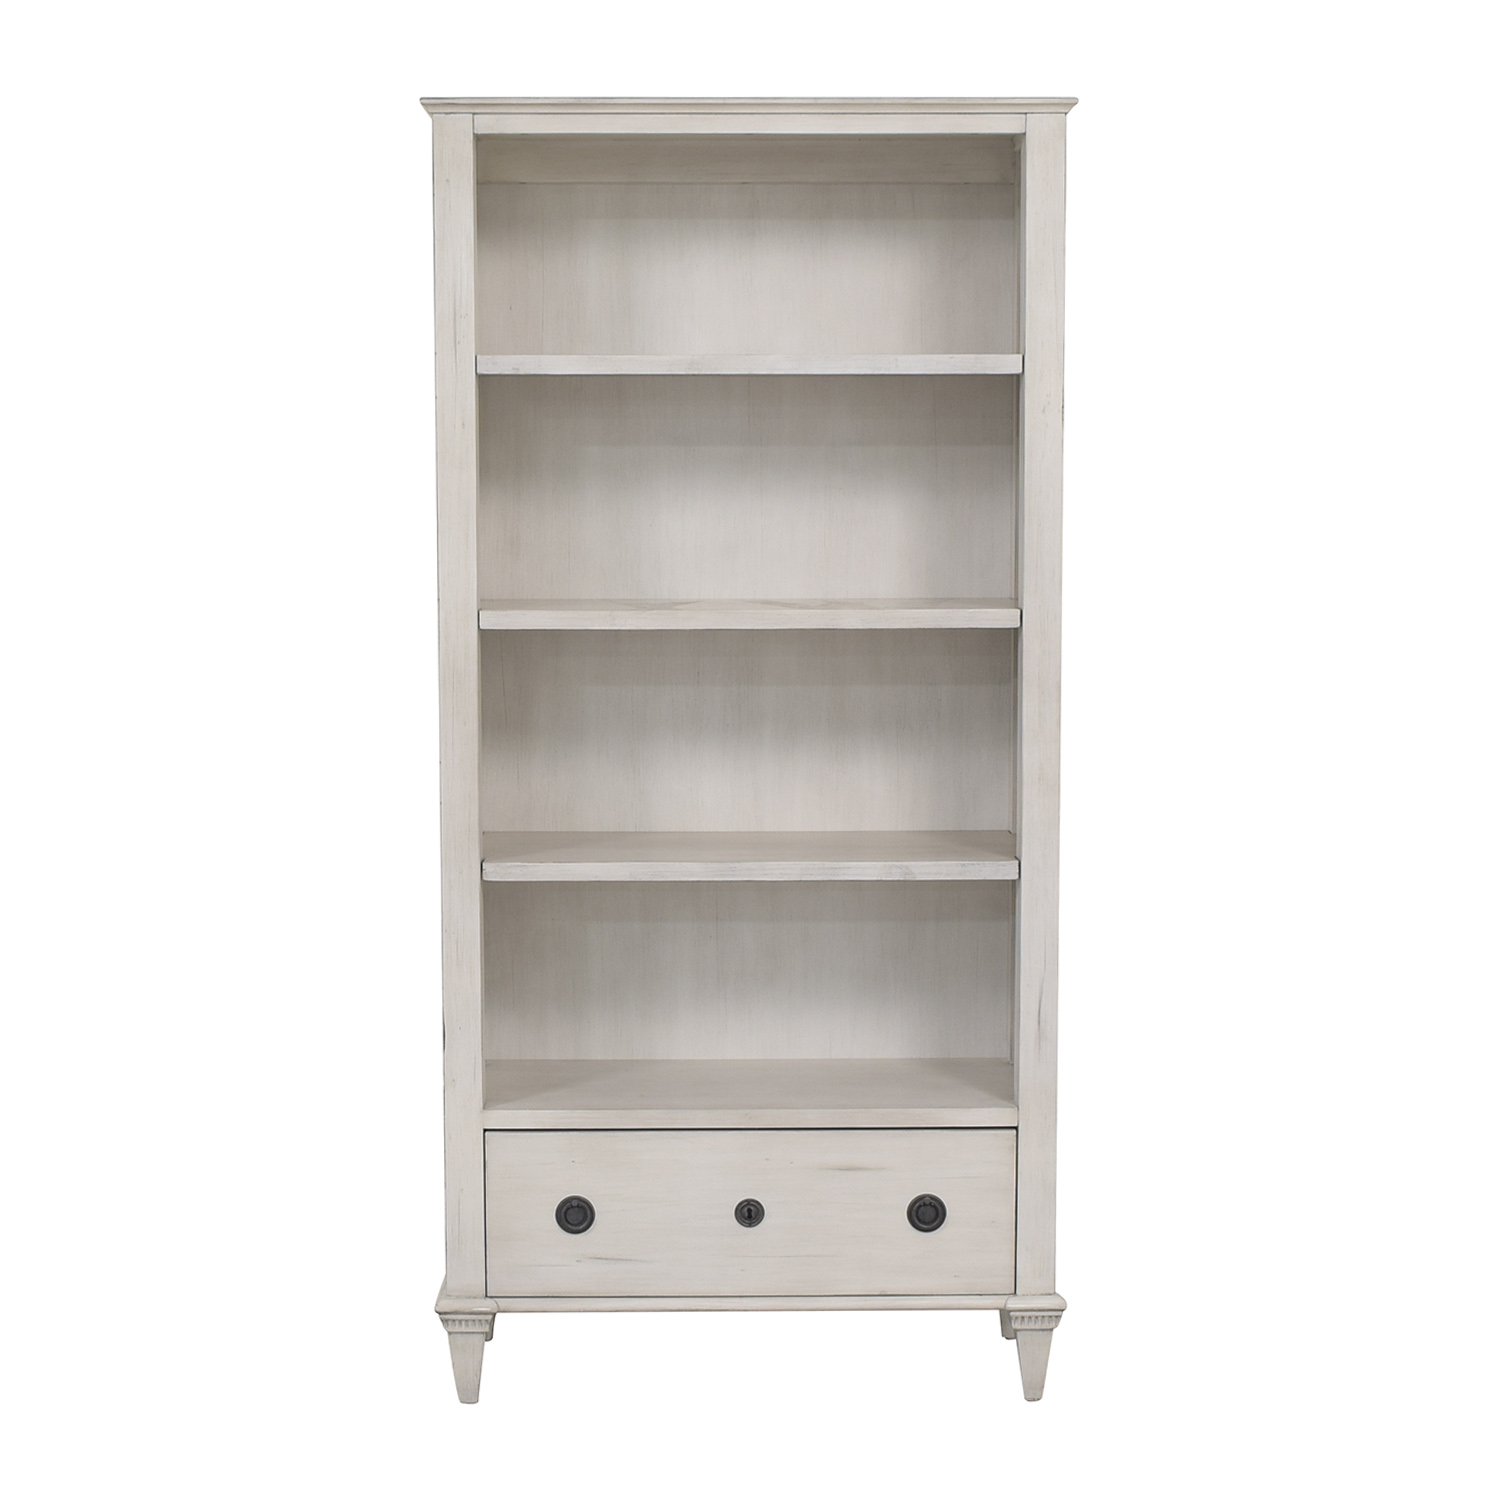 Restoration Hardware Restoration Hardware Haylan Bookcase on sale